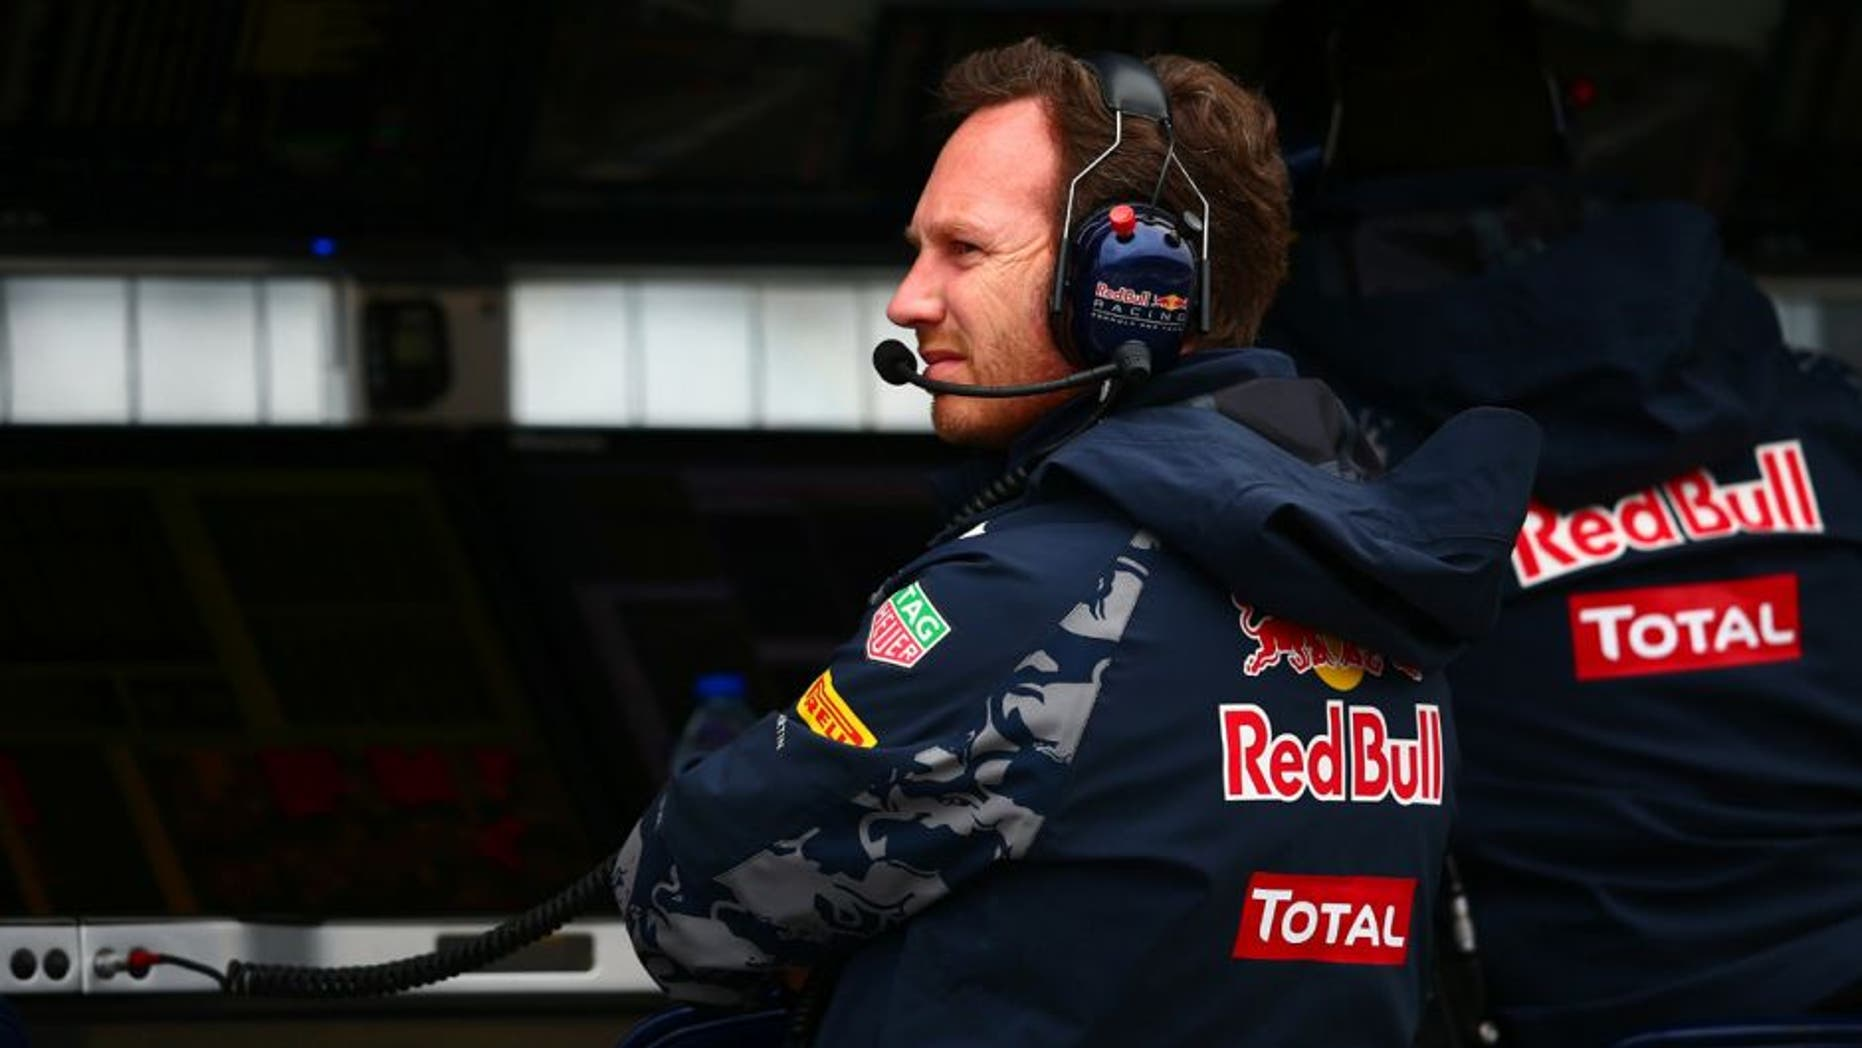 MONTREAL, QC - JUNE 11: Red Bull Racing Team Principal Christian Horner looks on from the pit wall during final practice ahead of the Canadian Formula One Grand Prix at Circuit Gilles Villeneuve on June 11, 2016 in Montreal, Canada. (Photo by Dan Istitene/Getty Images)